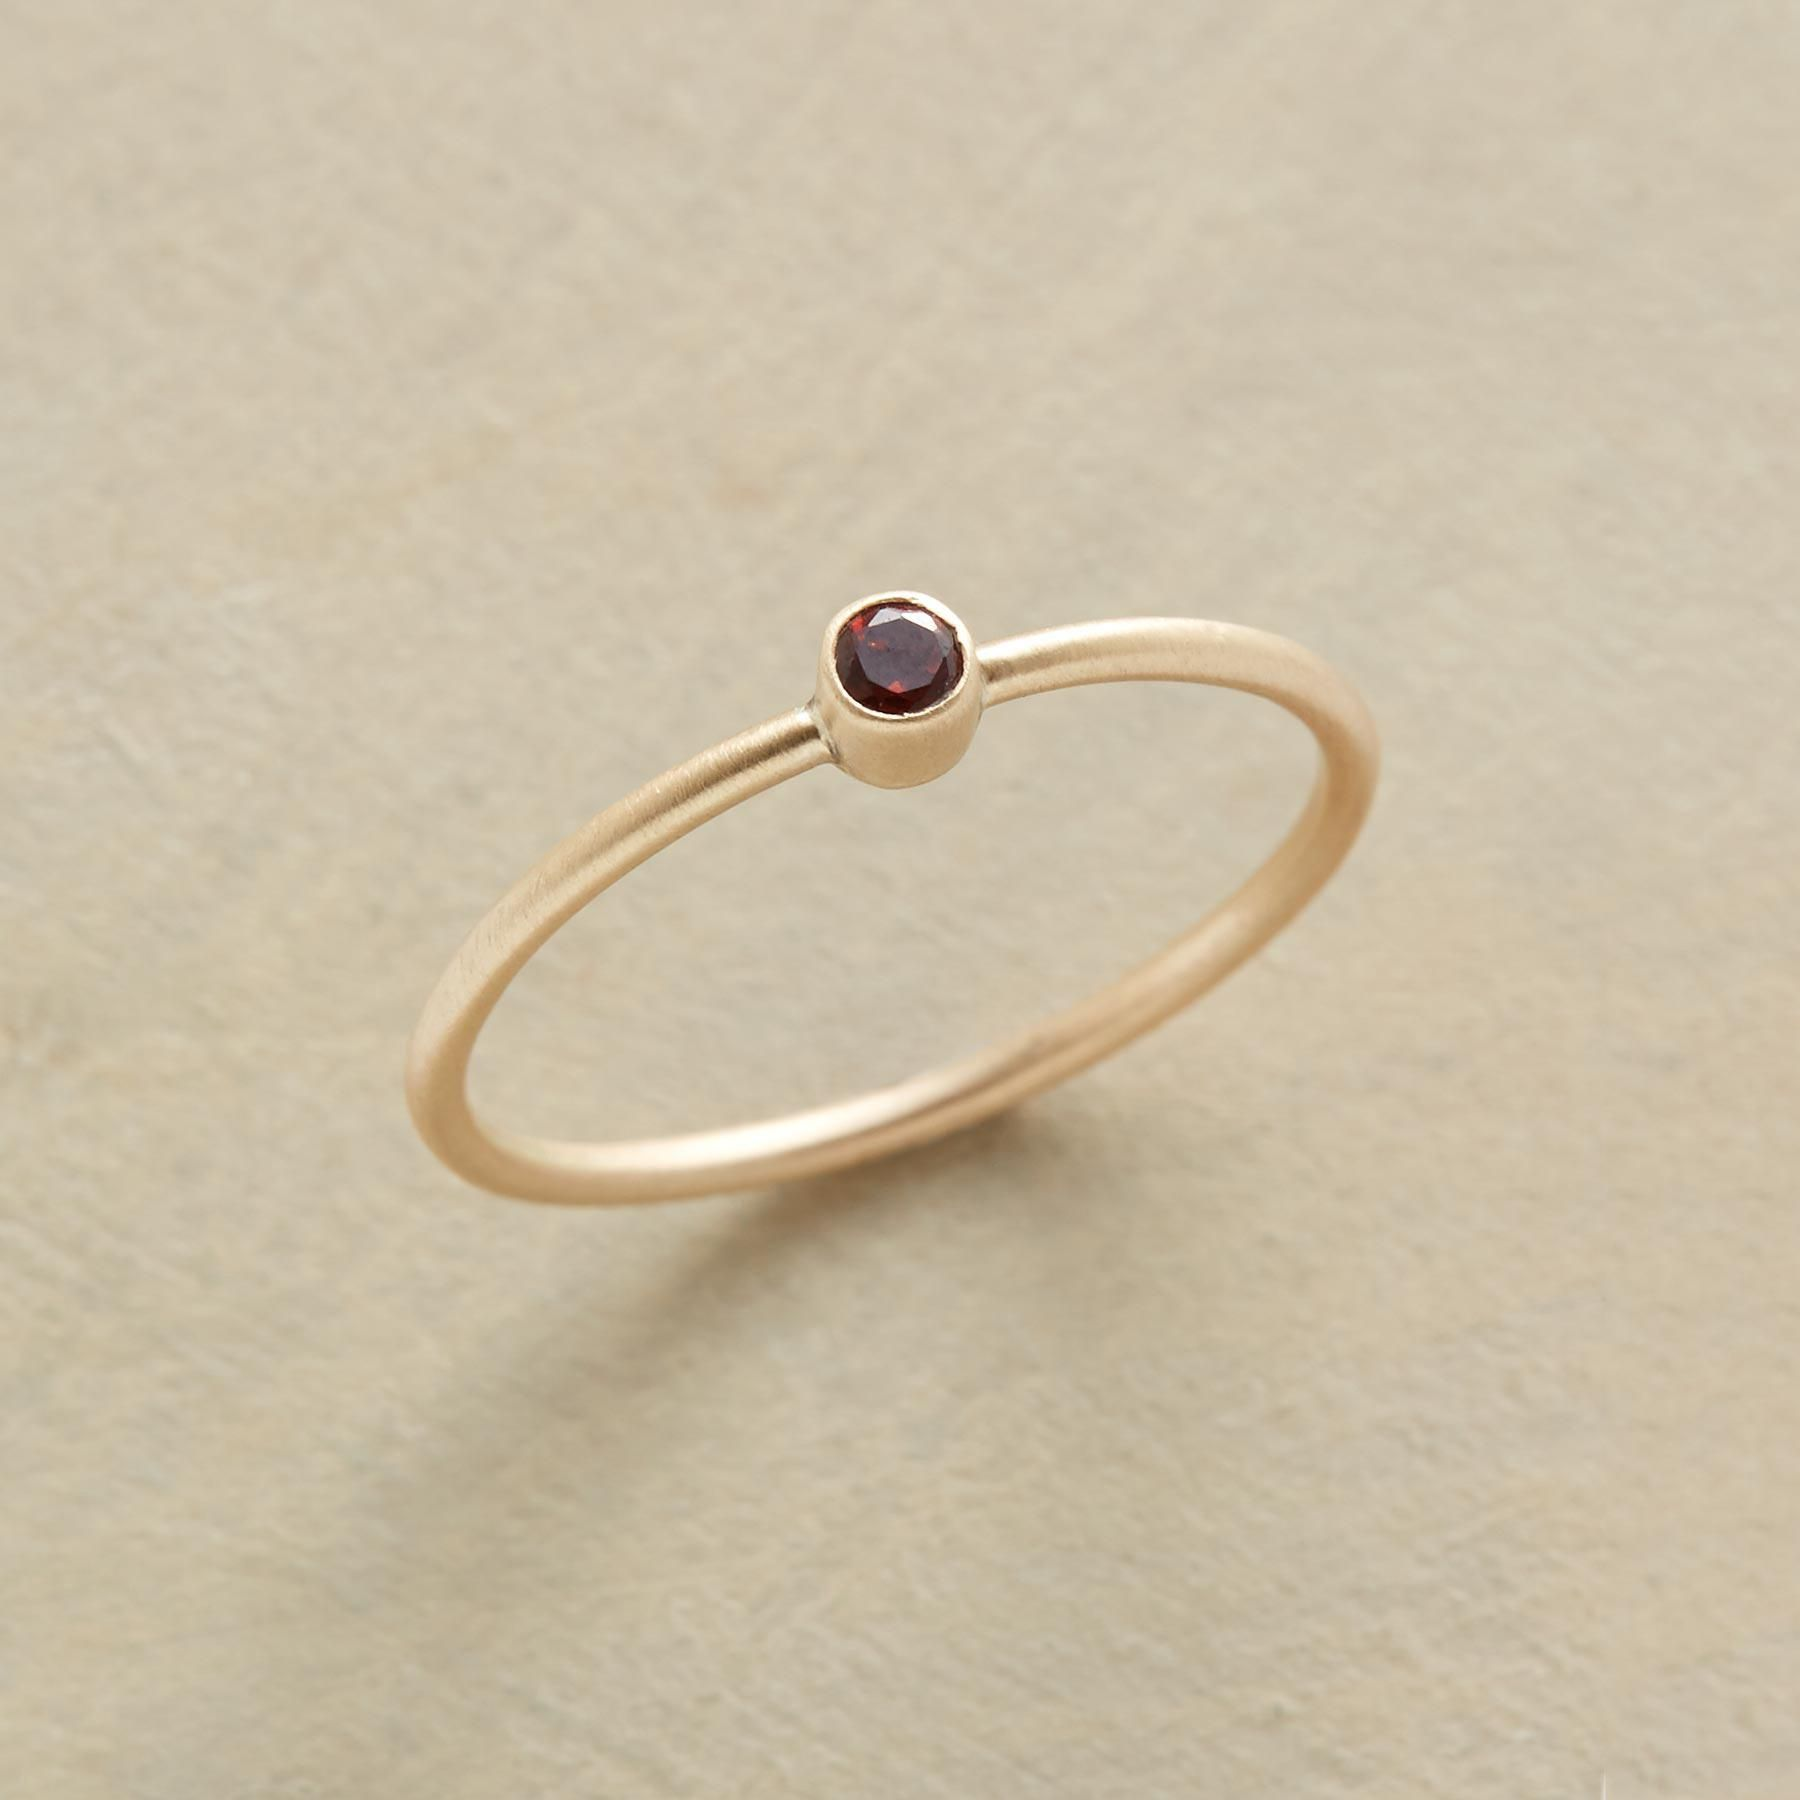 Small wonder ring a dainty drop of red garnet lights up your hand